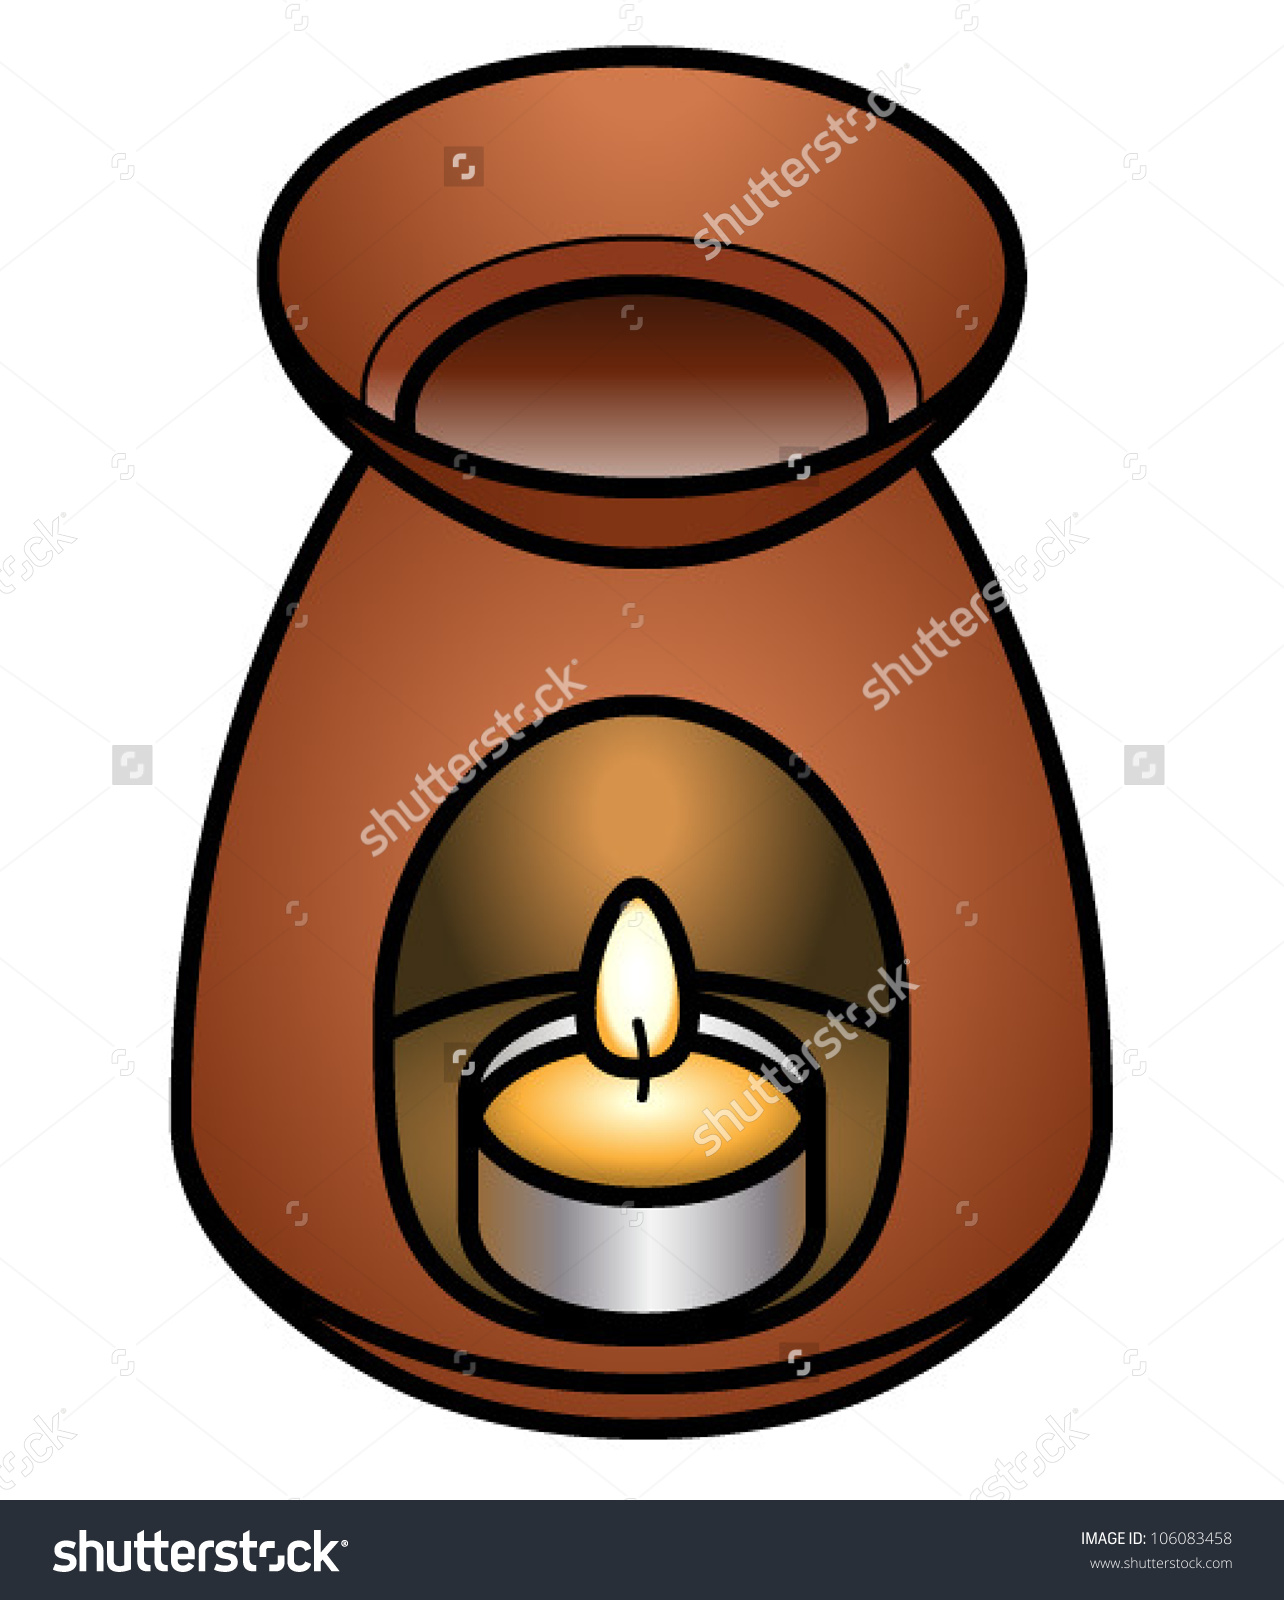 A Terracotta Oil Burner With A Tea Light And Some Essential Oils.